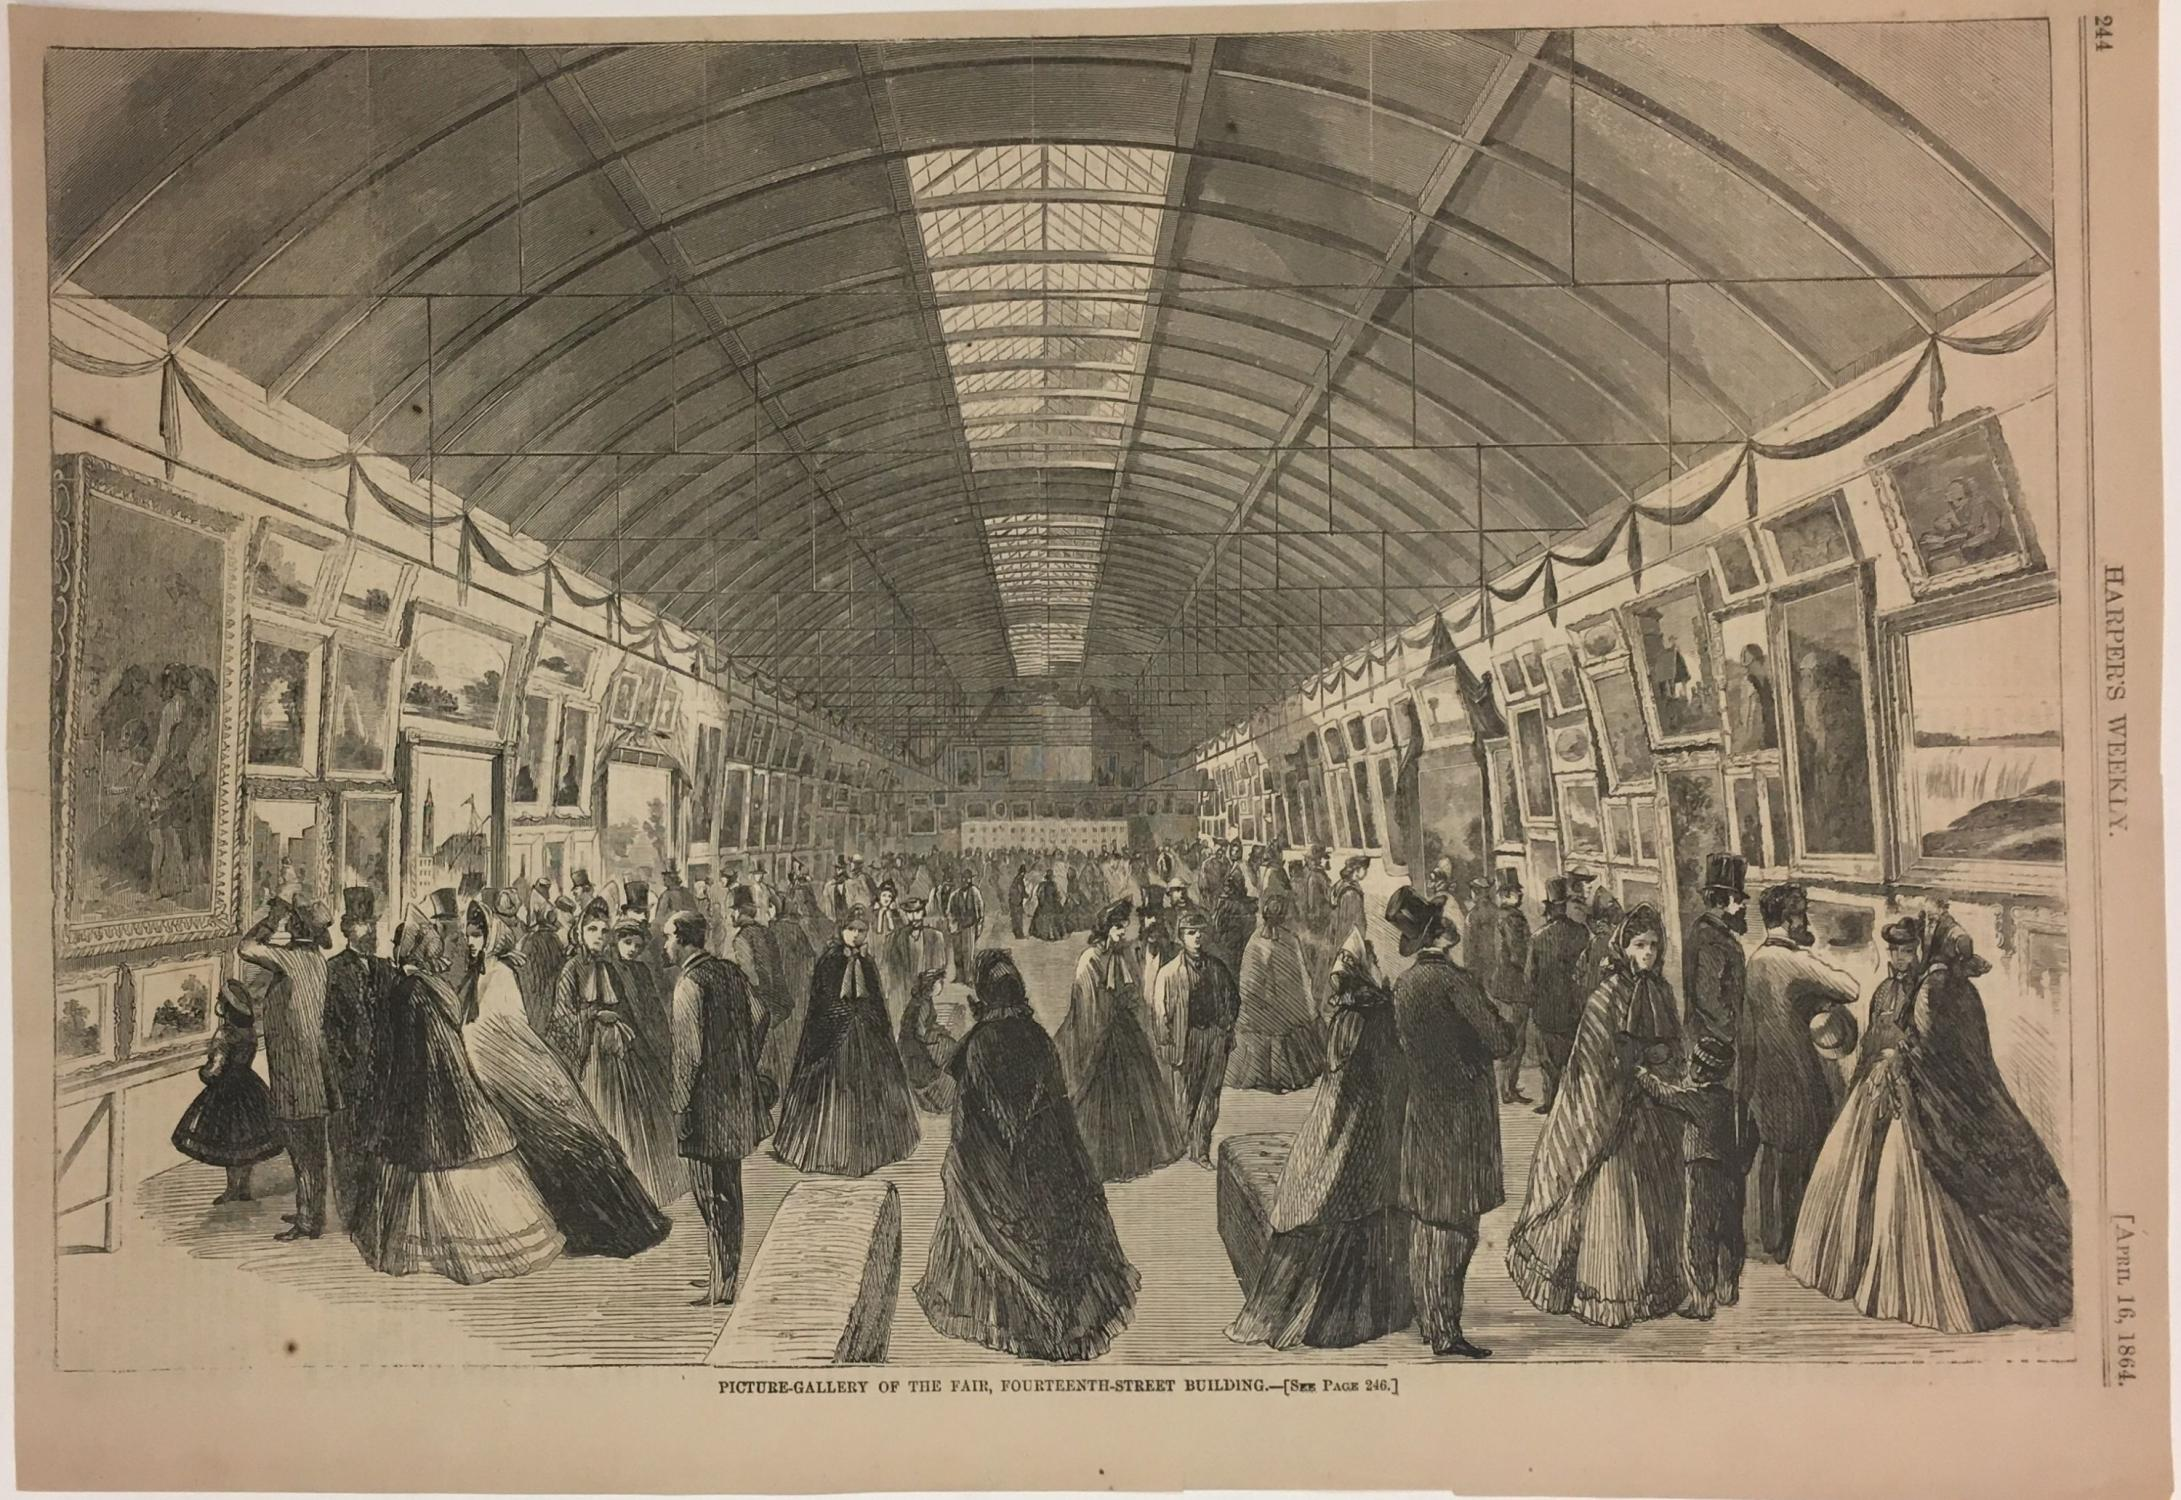 Picture-Gallery of the Fair, Fourteenth-Street Building: HARPER'S WEEKLY